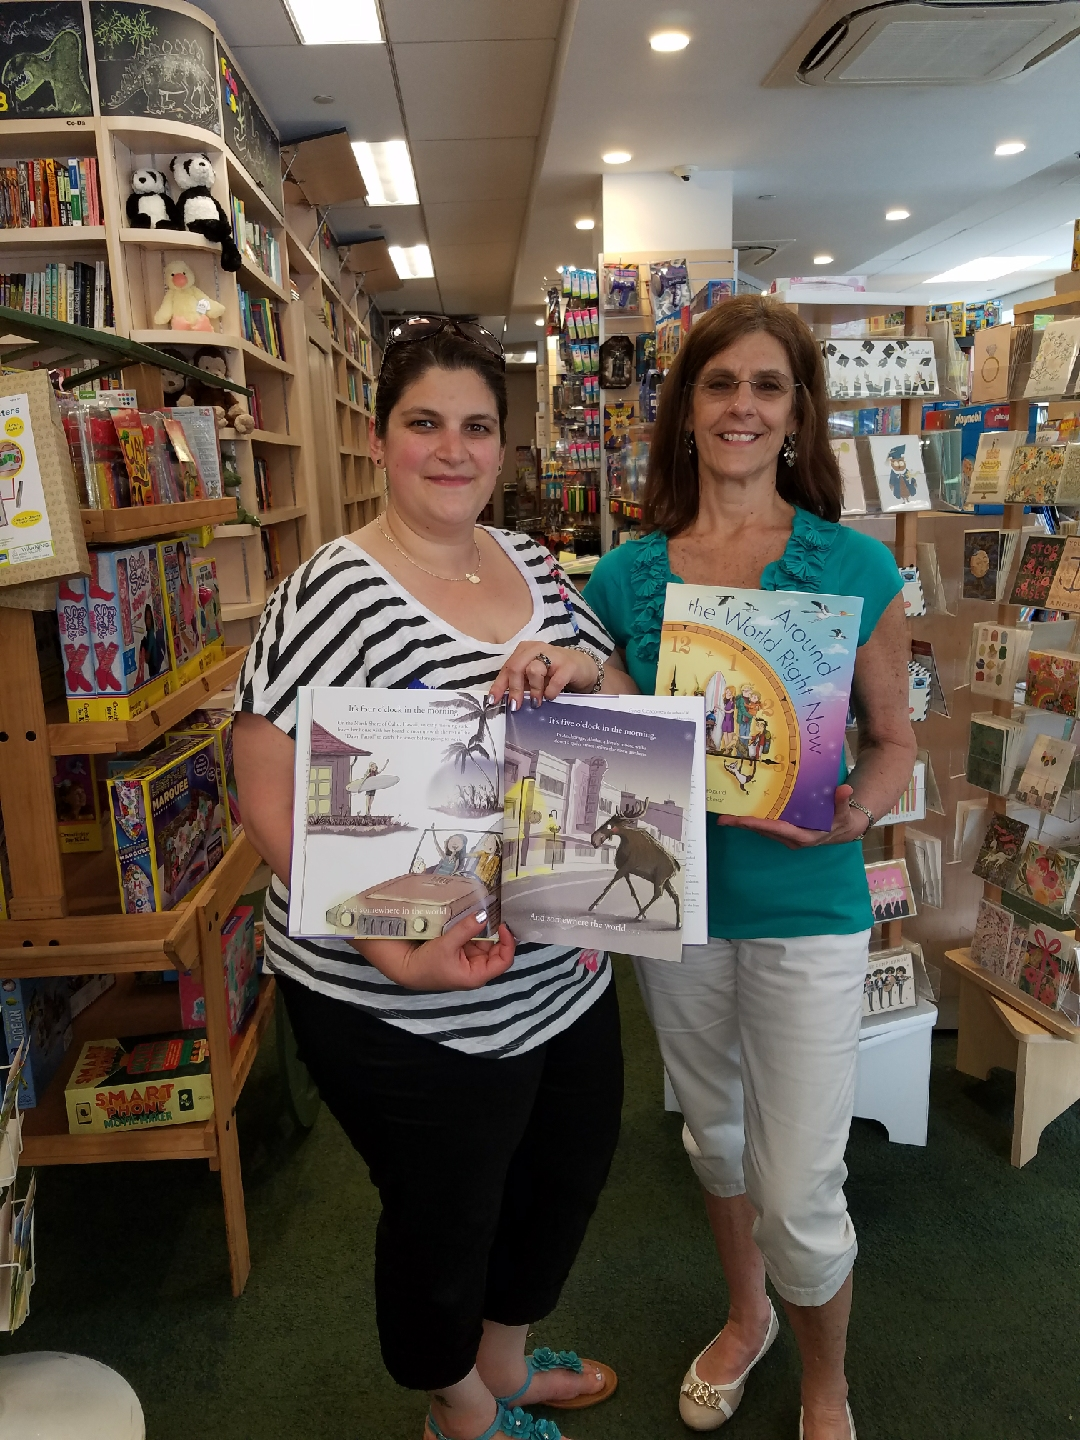 Gina Cascone and Bree Sheppard on Author Book Promotion